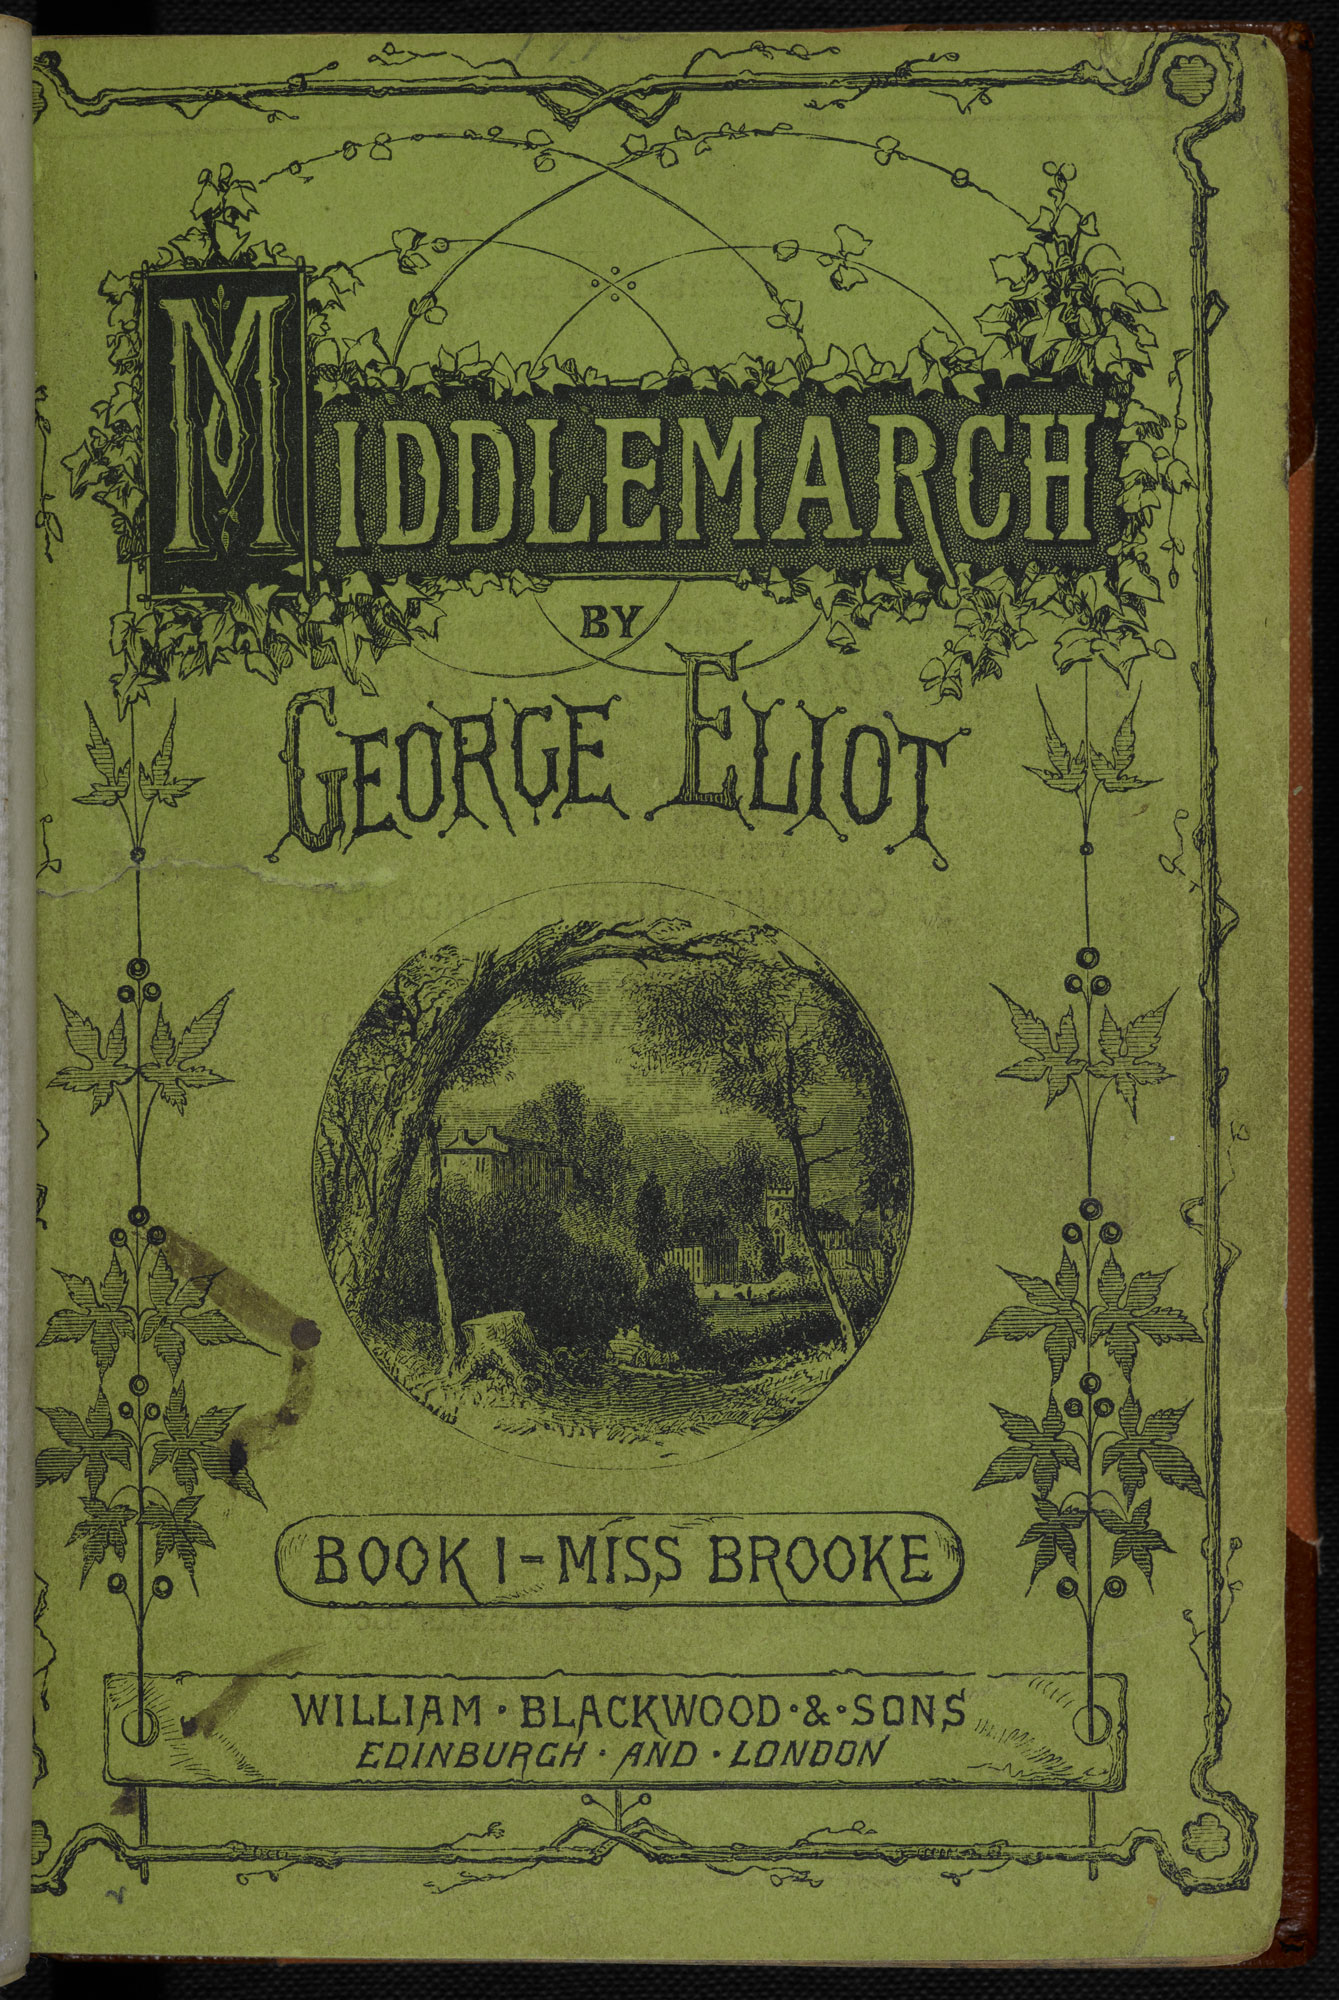 Middlemarch [Book I] [page: title page]